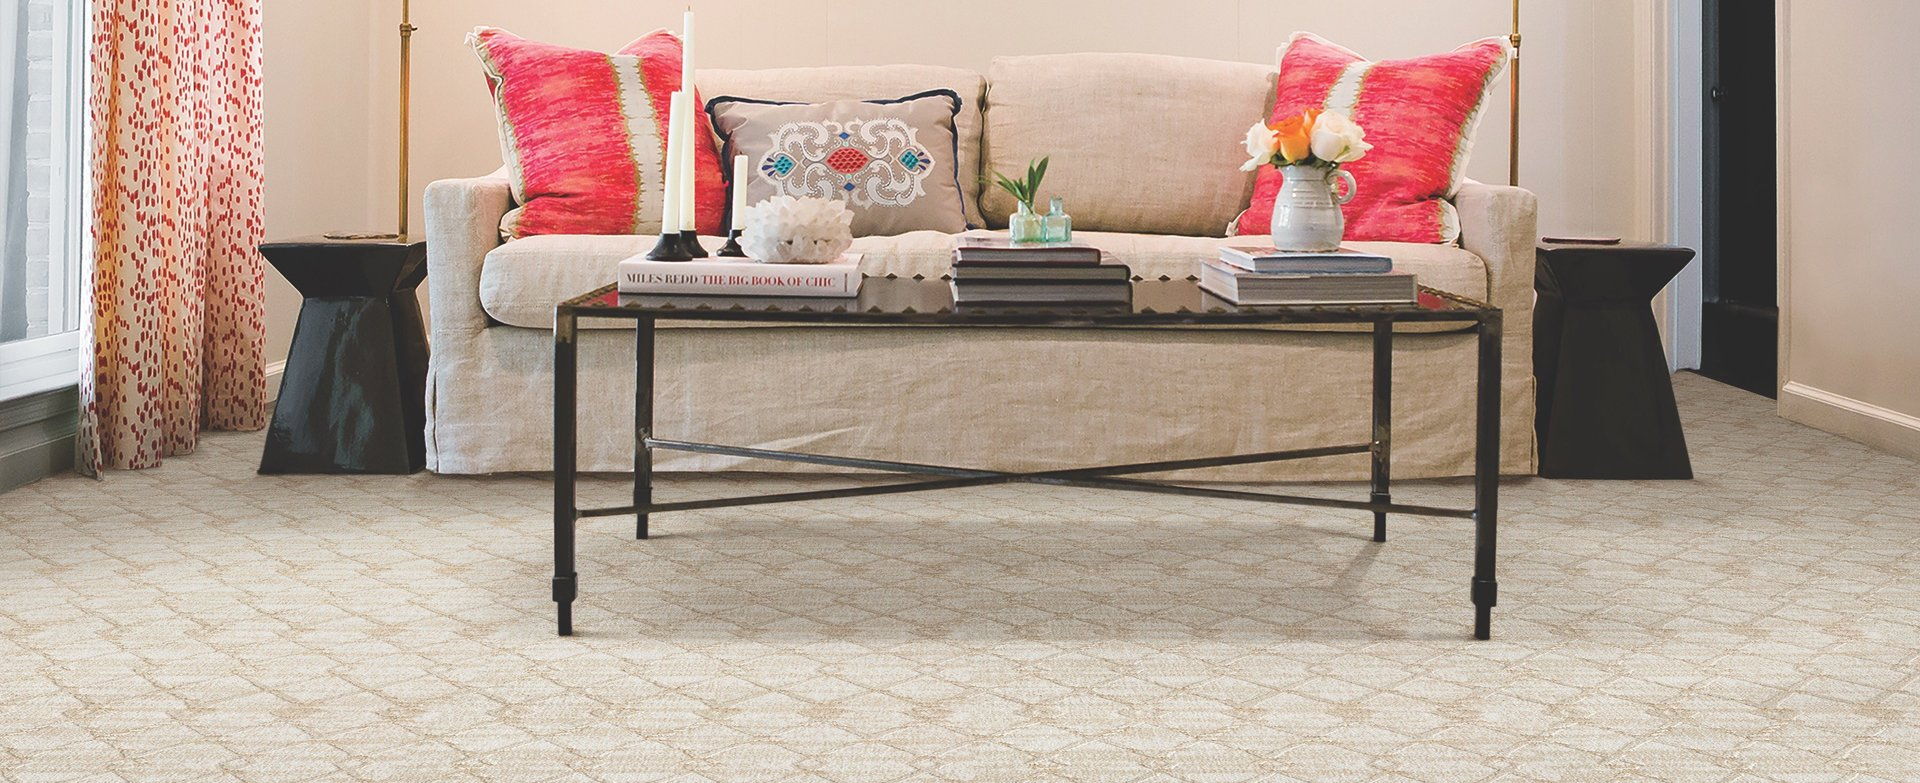 Town square floors residential flooring georgetown tx stylish comfortable carpet dailygadgetfo Image collections